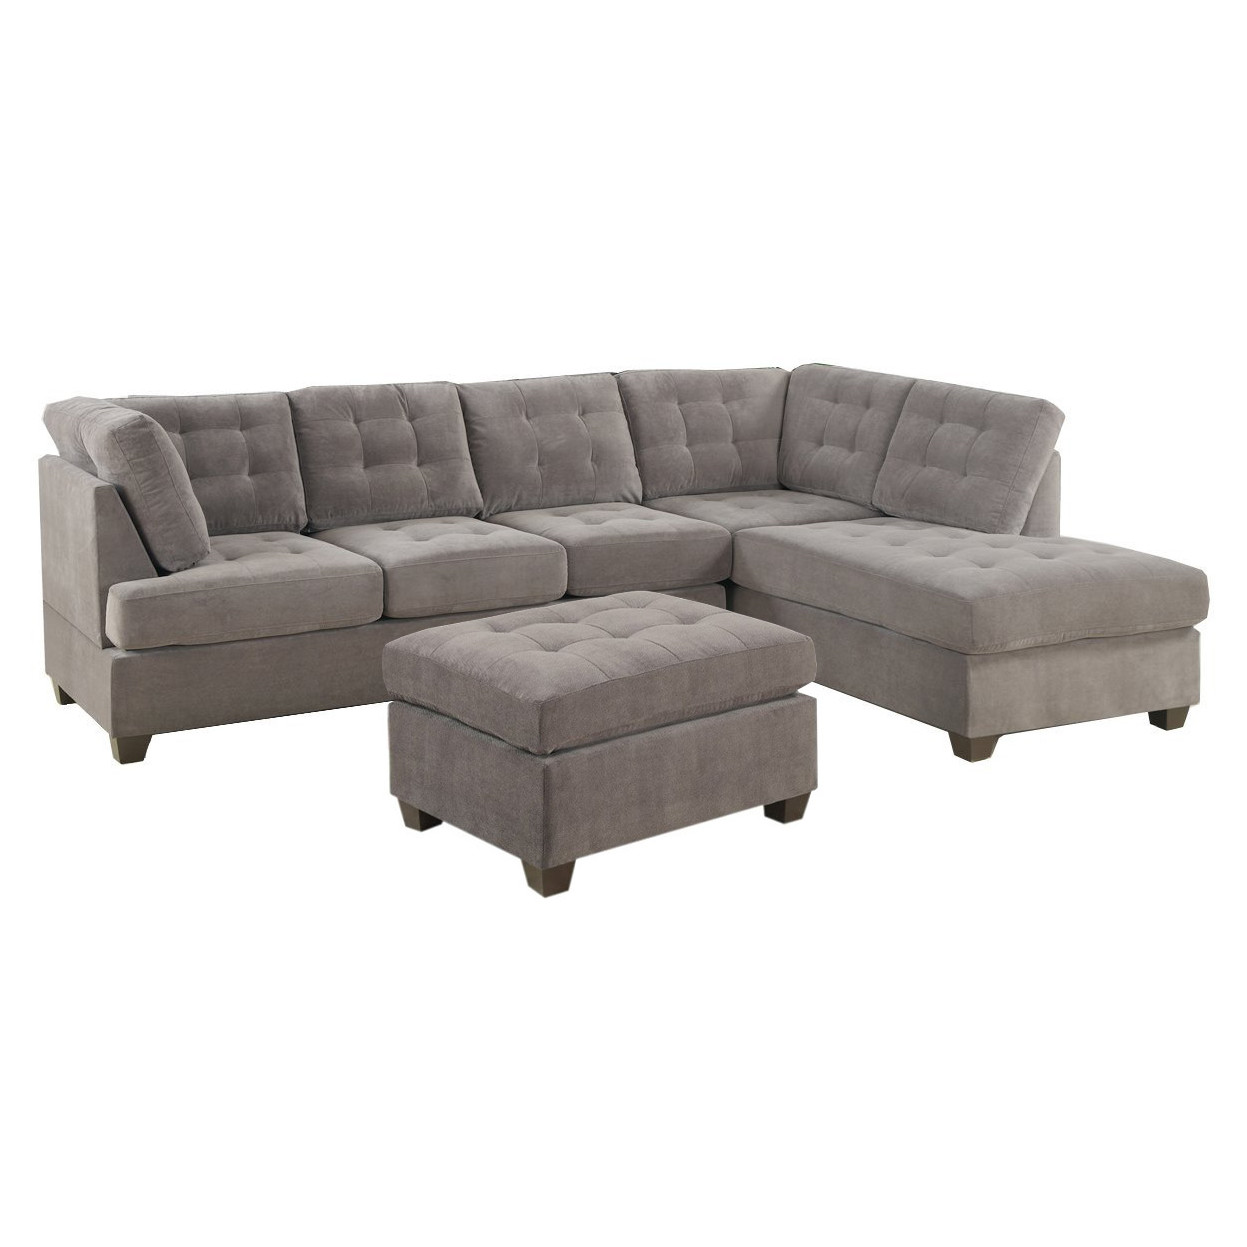 Sleeper Sectional Sofa For Small Spaces | Sectional Sleeper Sofa | Sectional With Recliner